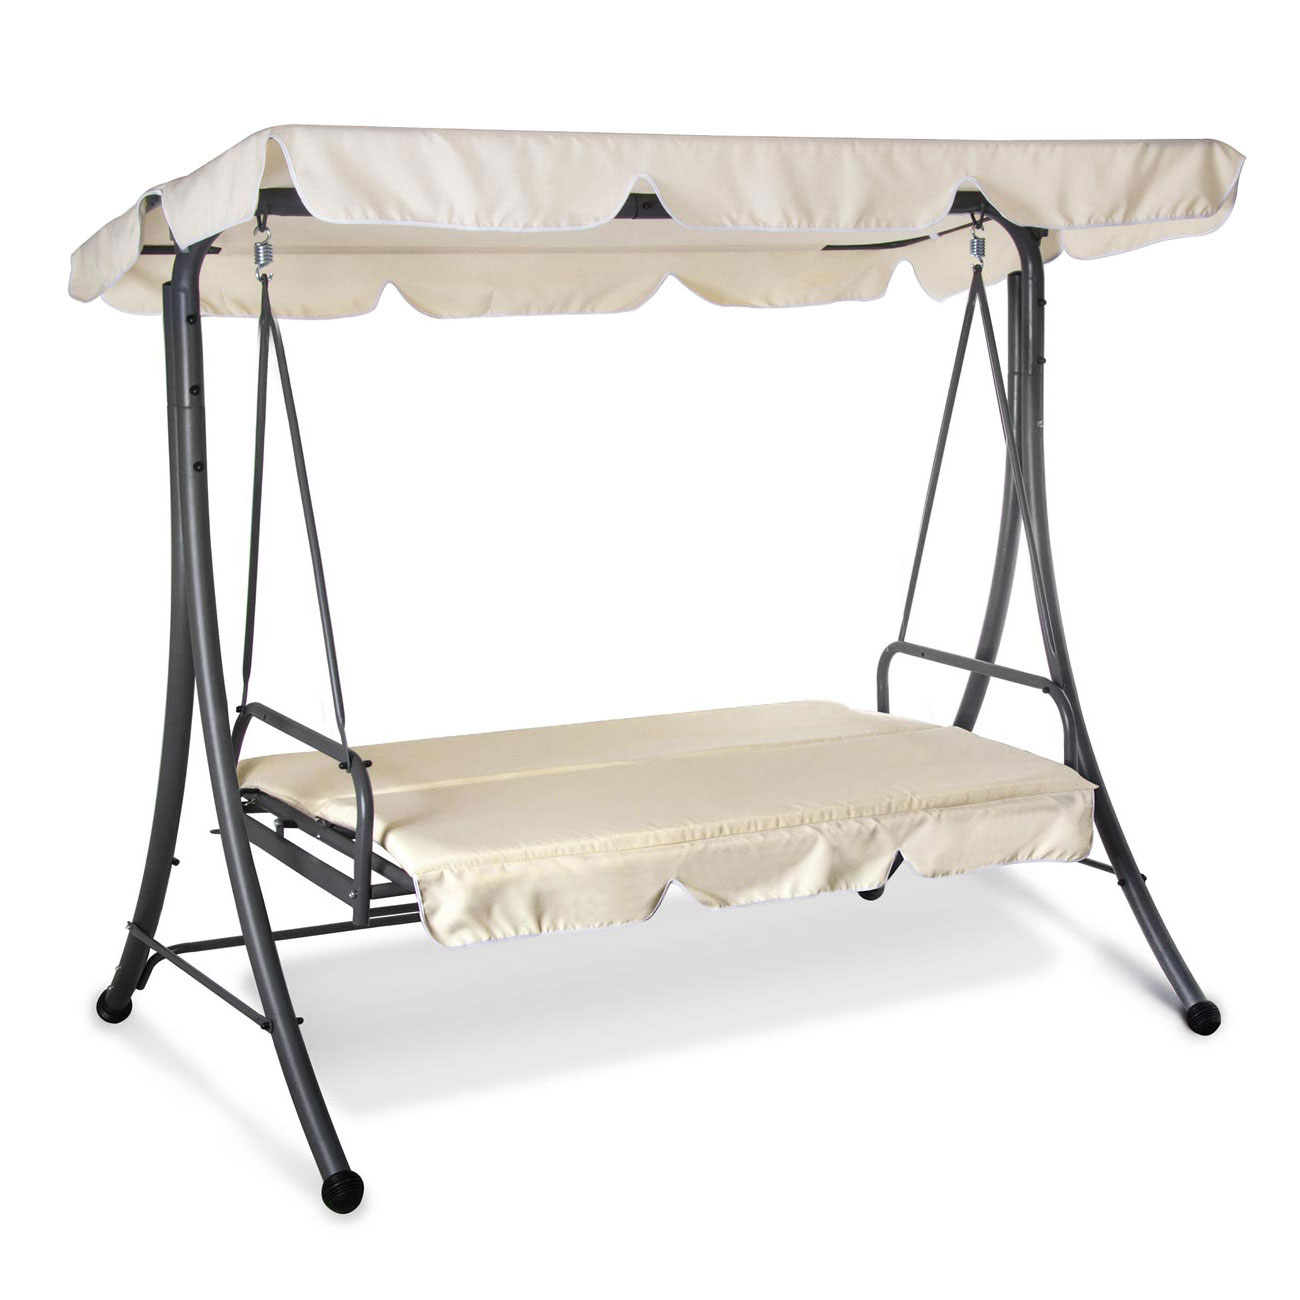 Garden Hammock Swing Chair 3 Seater Lounger Canopy Patio Bench Cushioned Outdoor